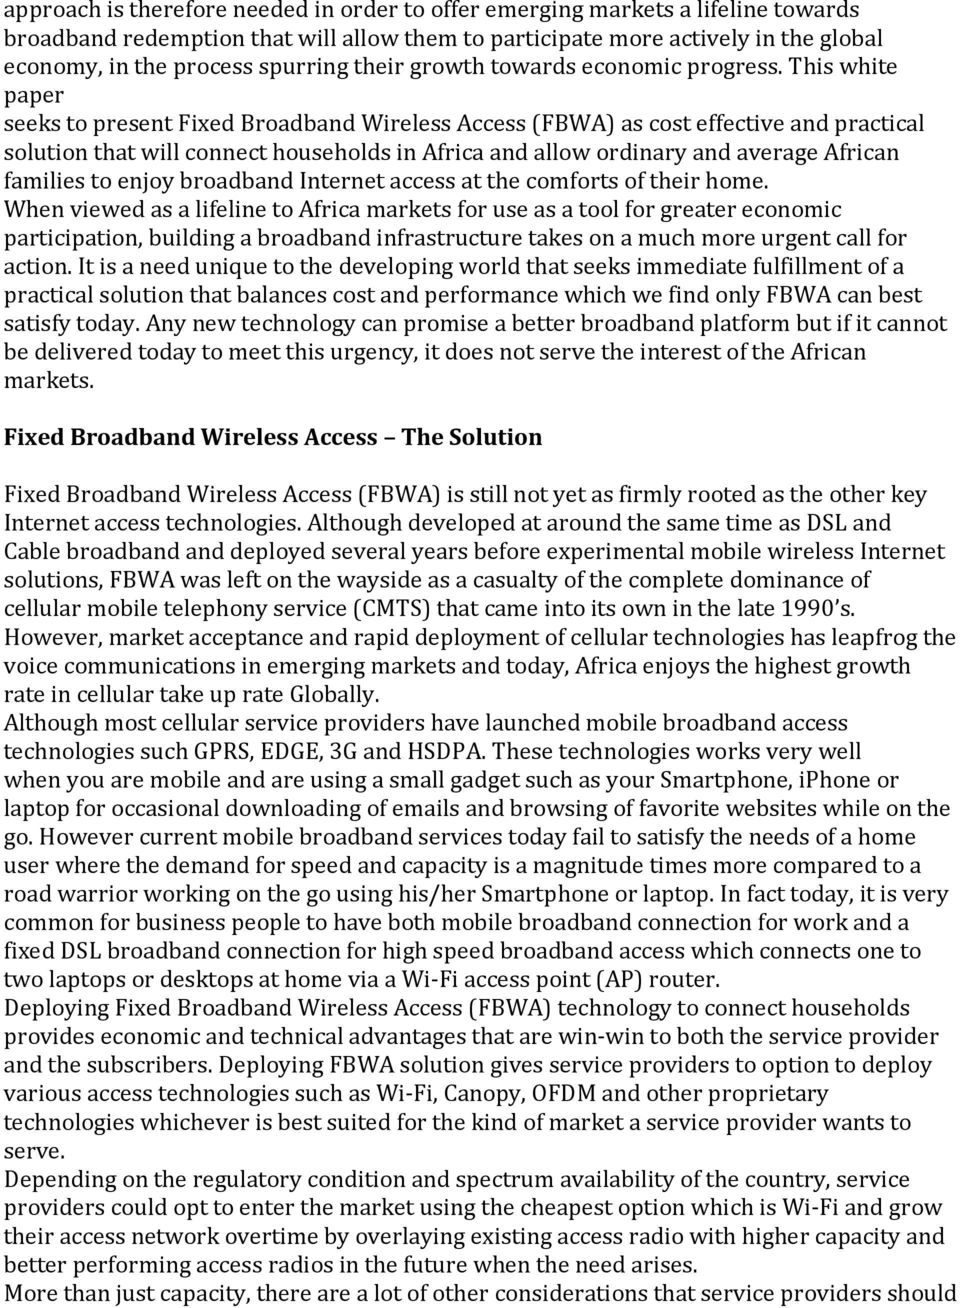 This white paper seeks to present Fixed Broadband Wireless Access (FBWA) as cost effective and practical solution that will connect households in Africa and allow ordinary and average African